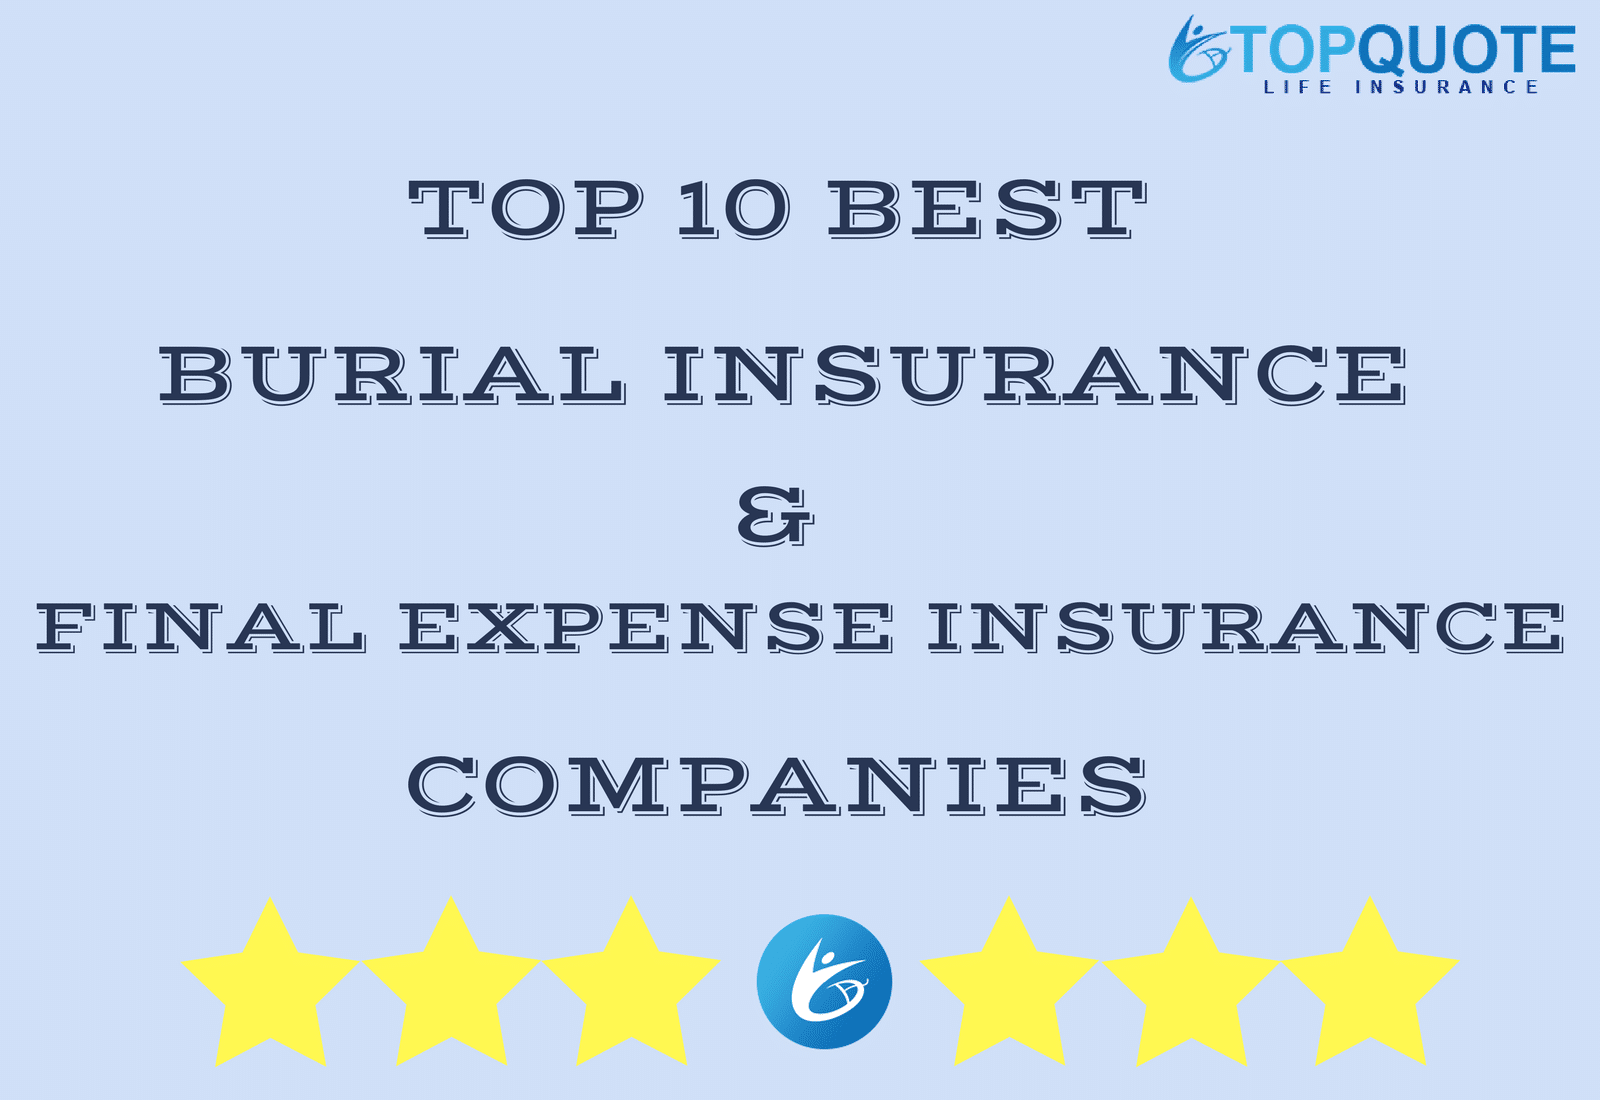 Whole Life Insurance Quote Online 2018 Top 10 Best Burial Insurance & Final Expense Insurance Companies